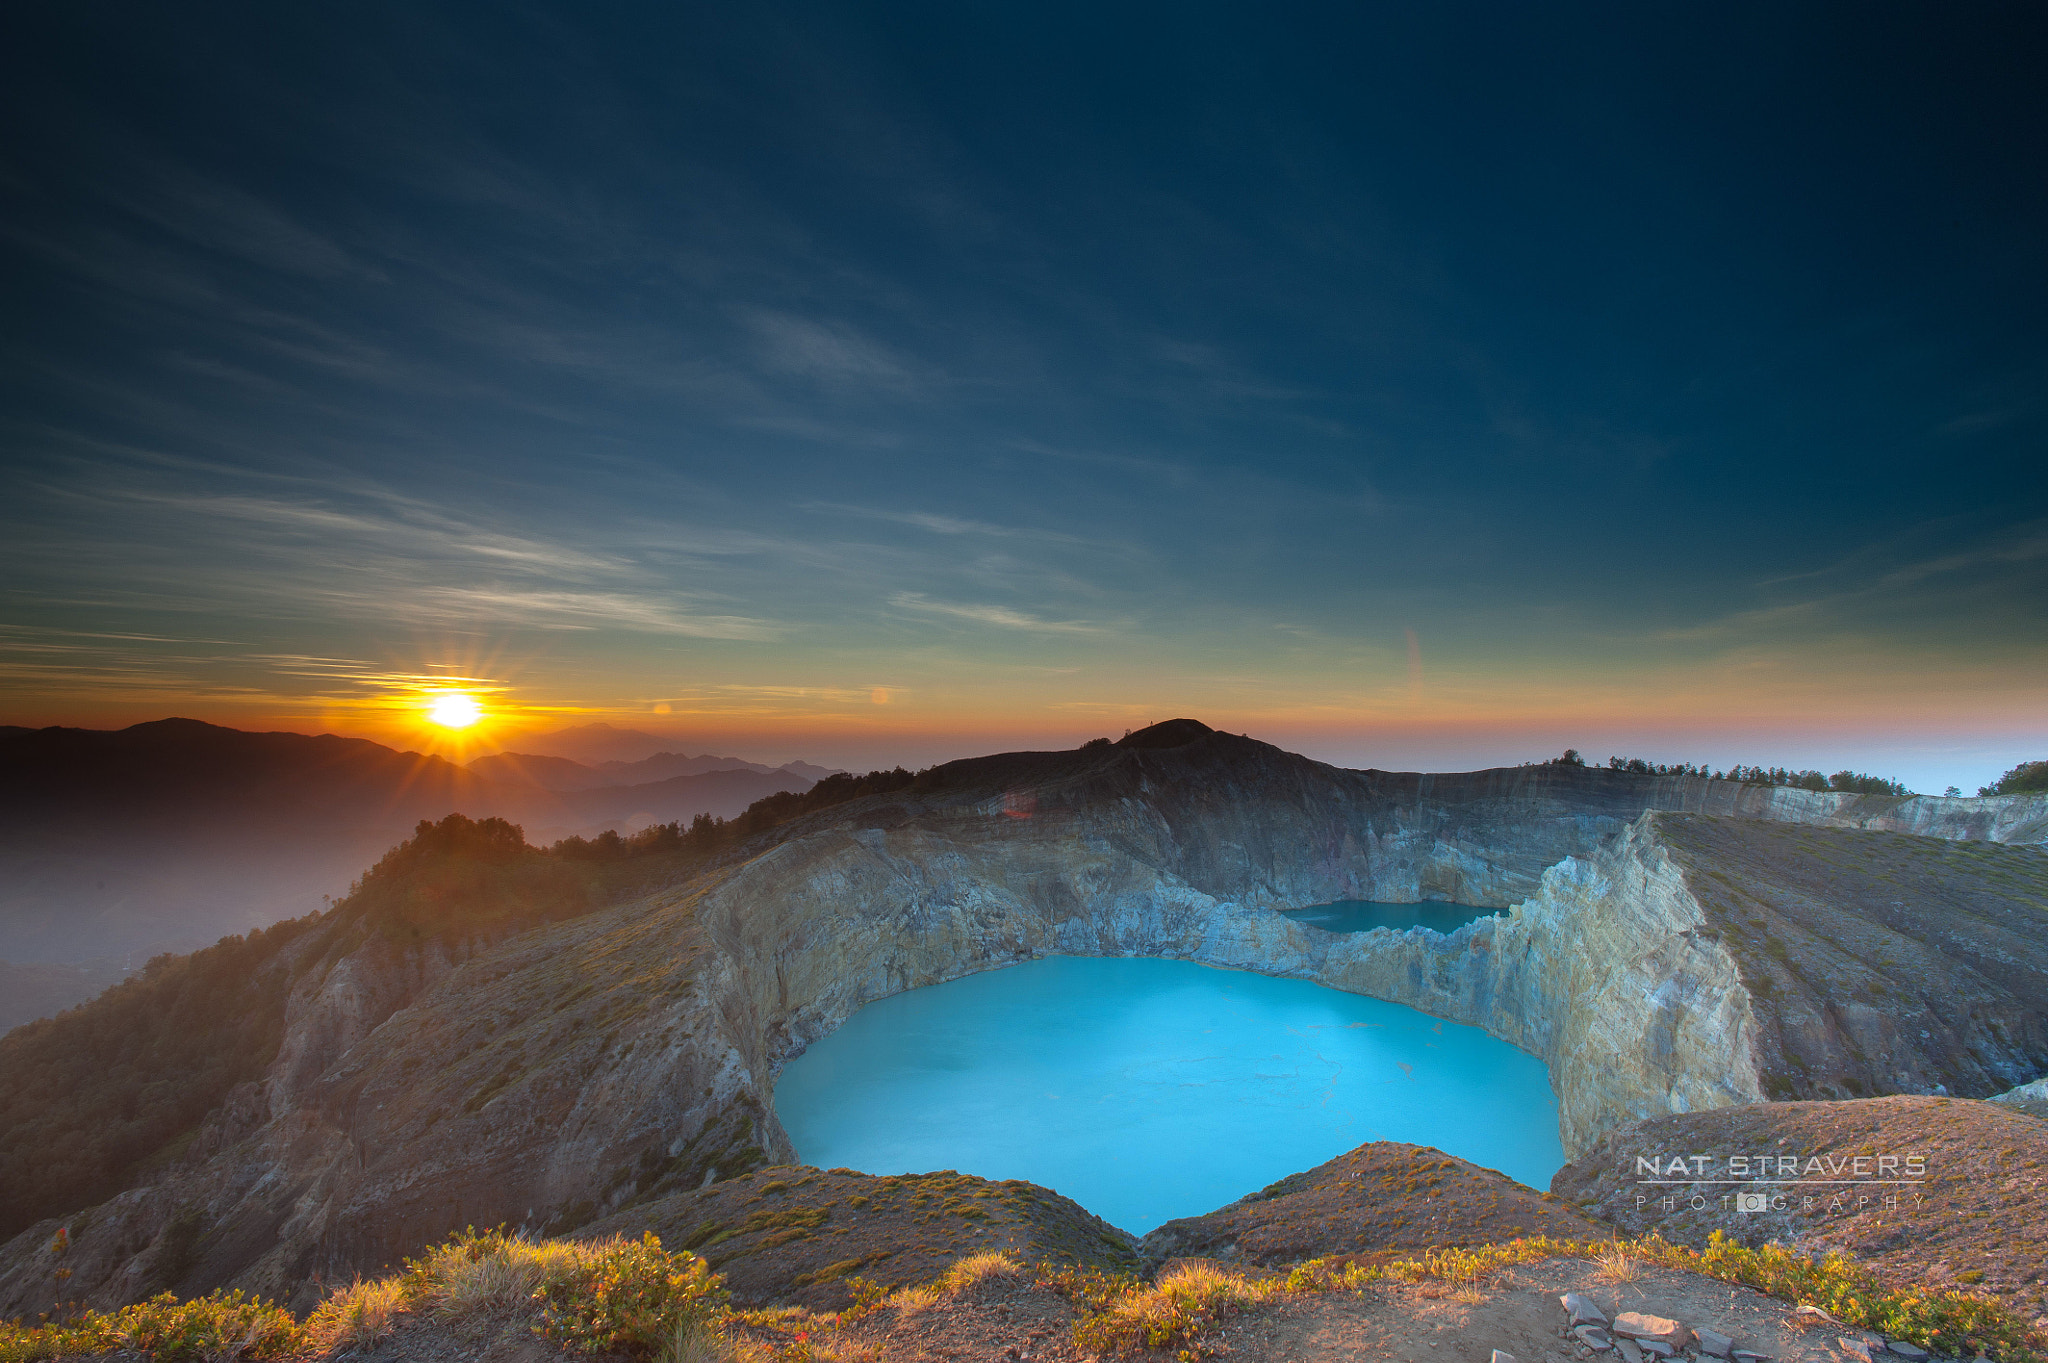 Photograph Kelimutu sunrise by Nathalie Stravers on 500px